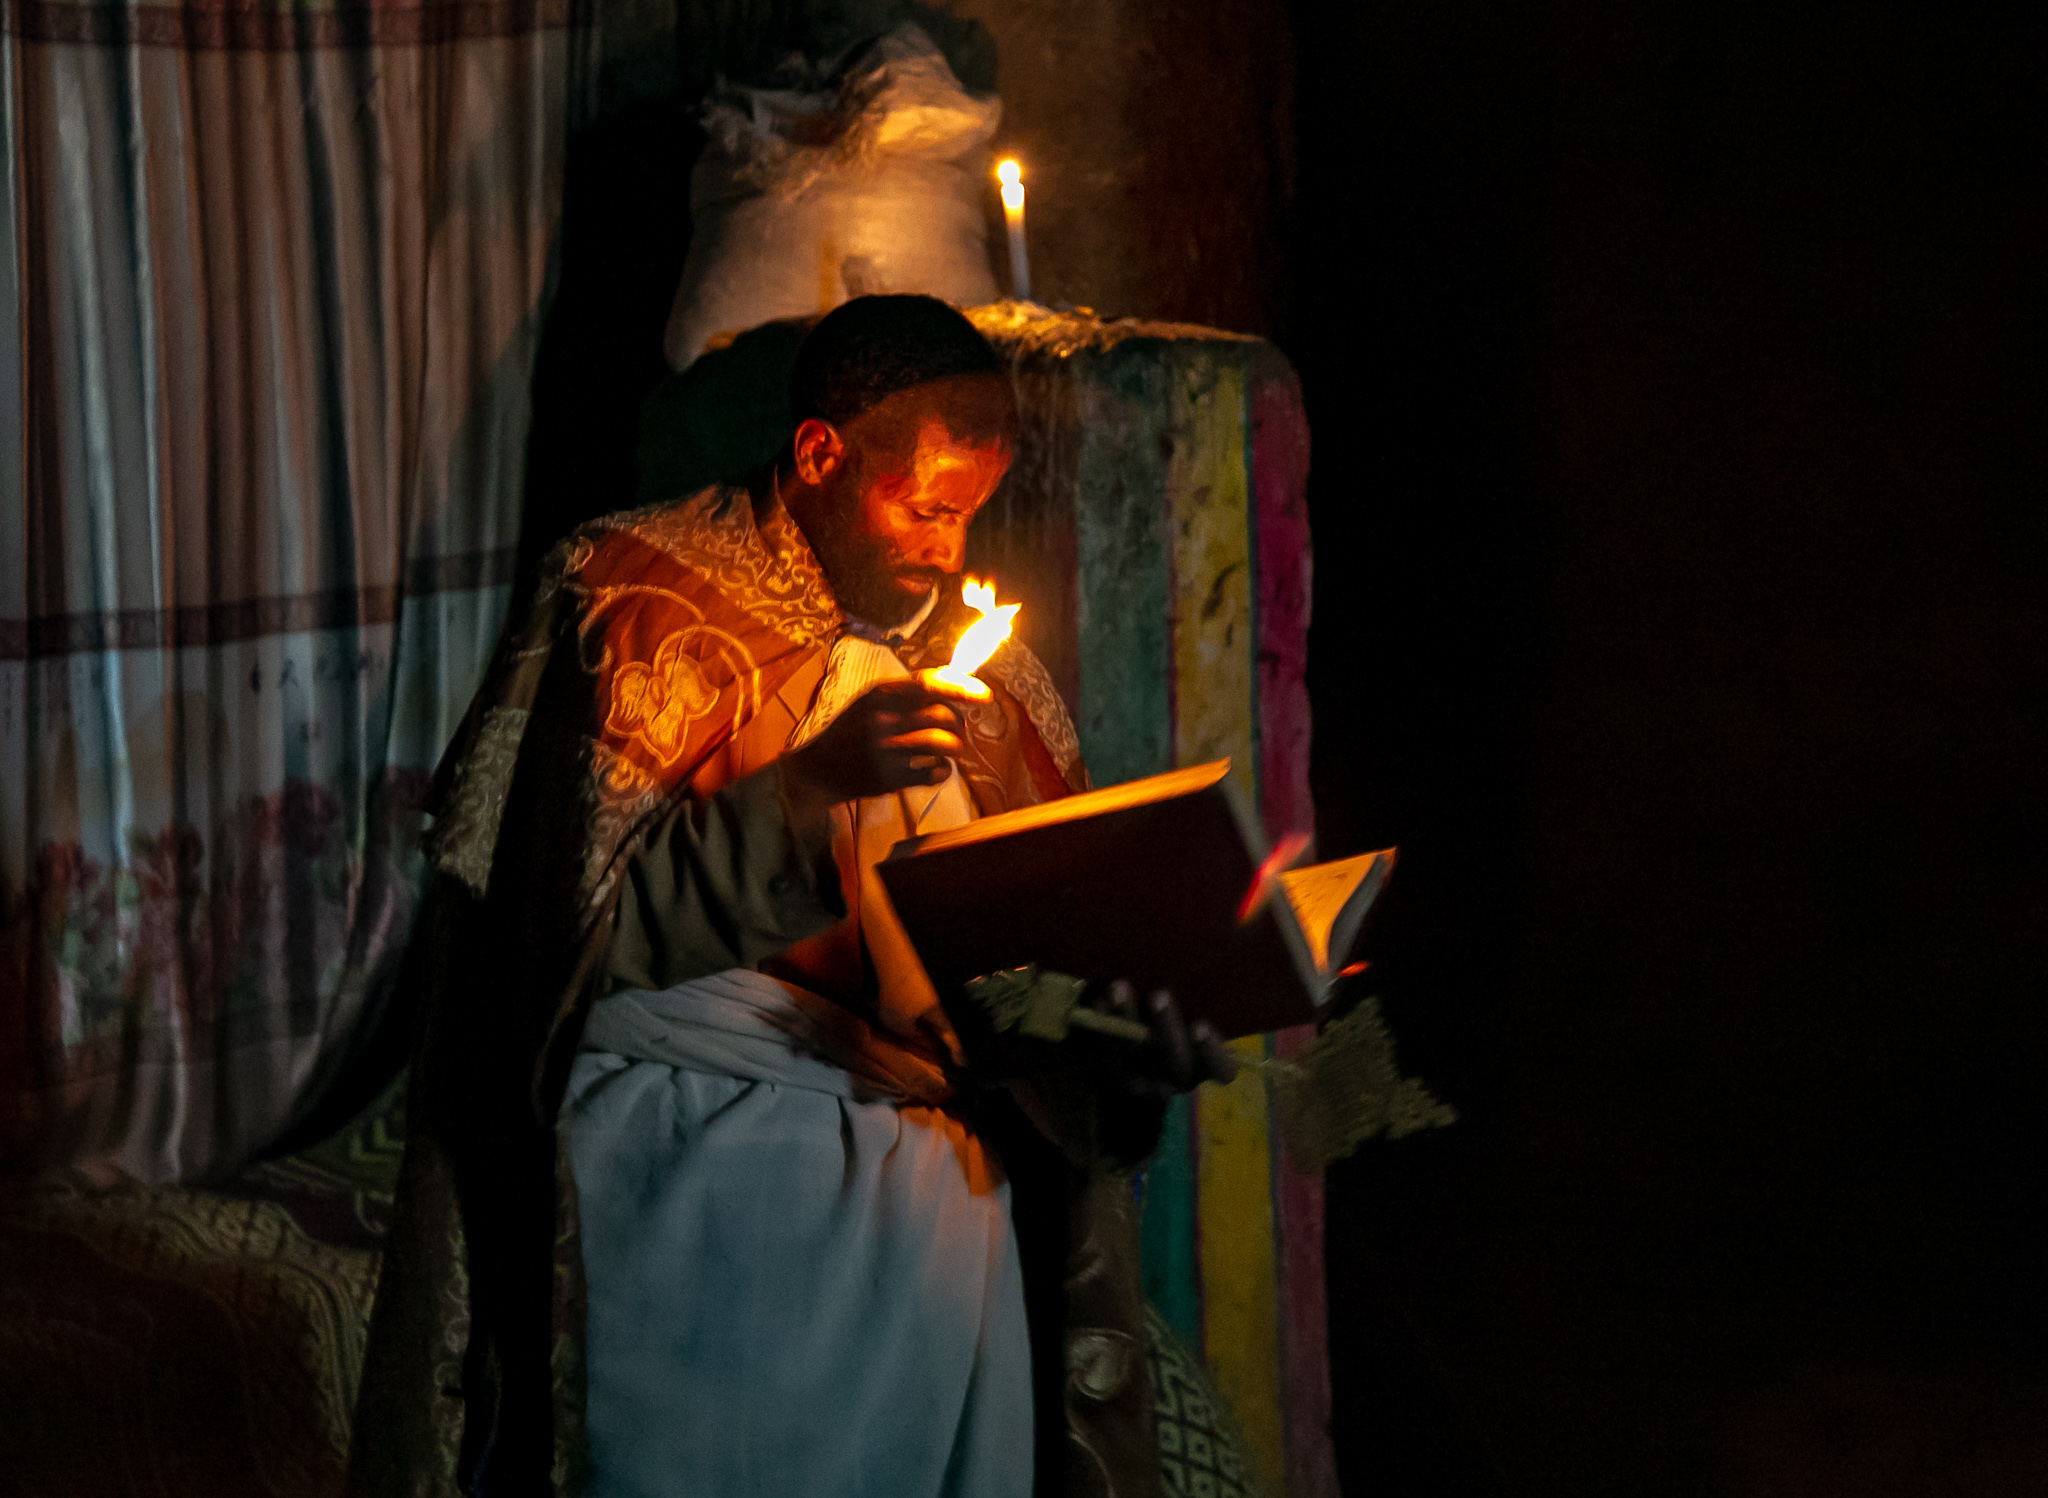 A monk reads aloud by hand-made waxed-wick candlelight. // photo © Kim I. Mott